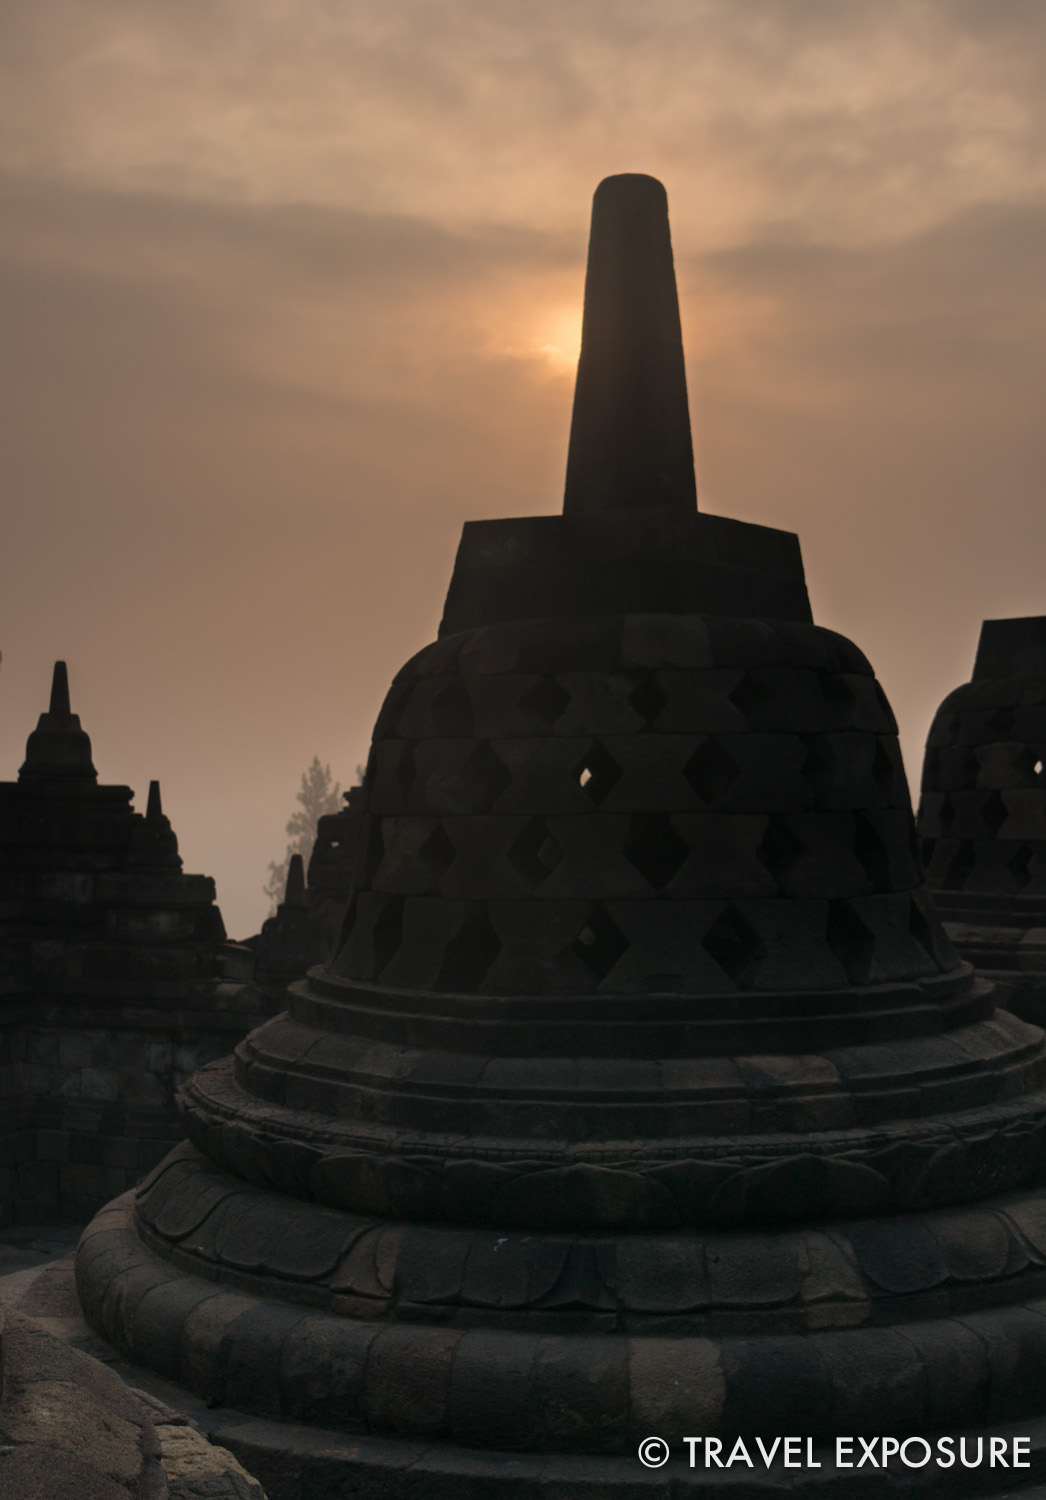 WEEK OF AUGUST 11 Sunlight peeks through a stupa at Borobudur Temple in Indonesia, one of the largest Buddhist monuments in the world.